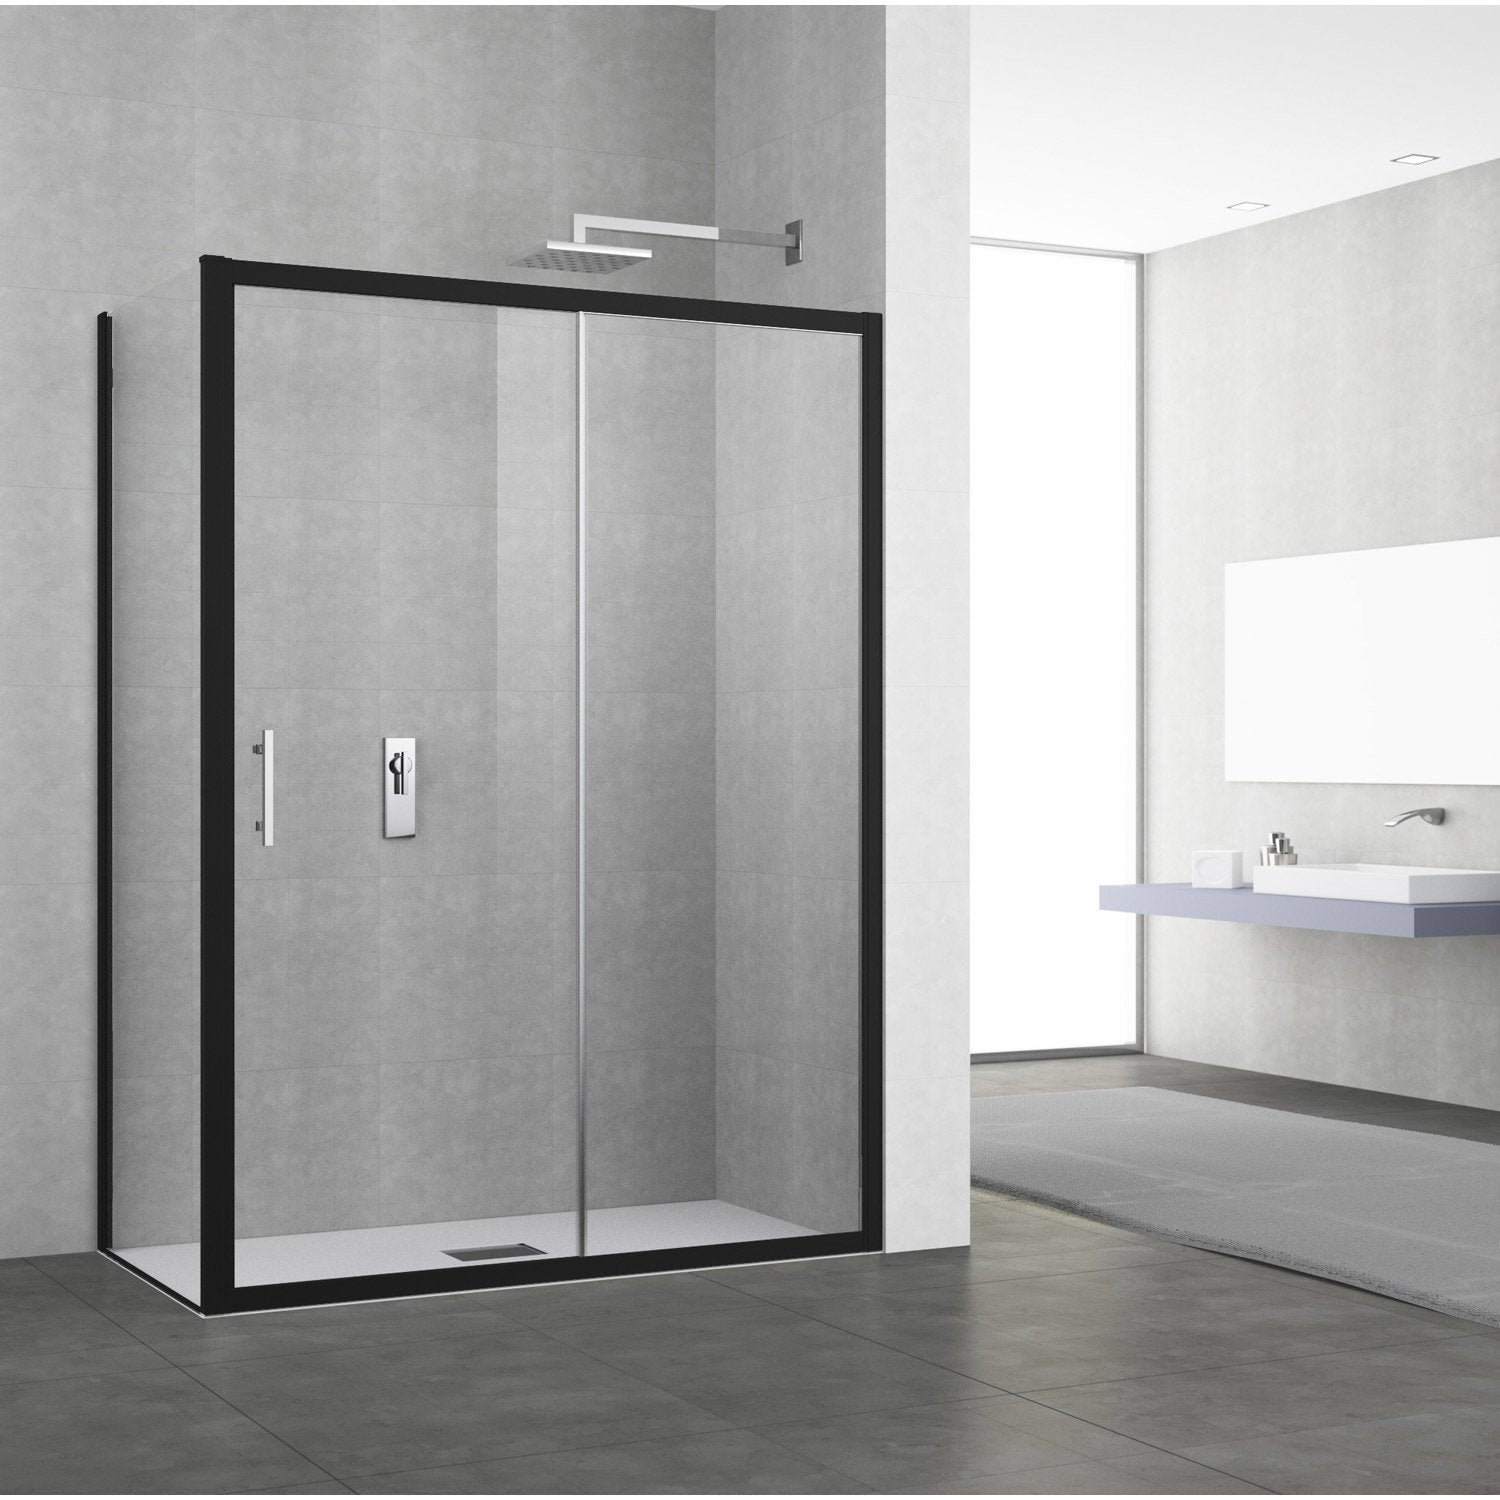 porte de douche coulissante transparent elyt 2 pnx leroy merlin. Black Bedroom Furniture Sets. Home Design Ideas